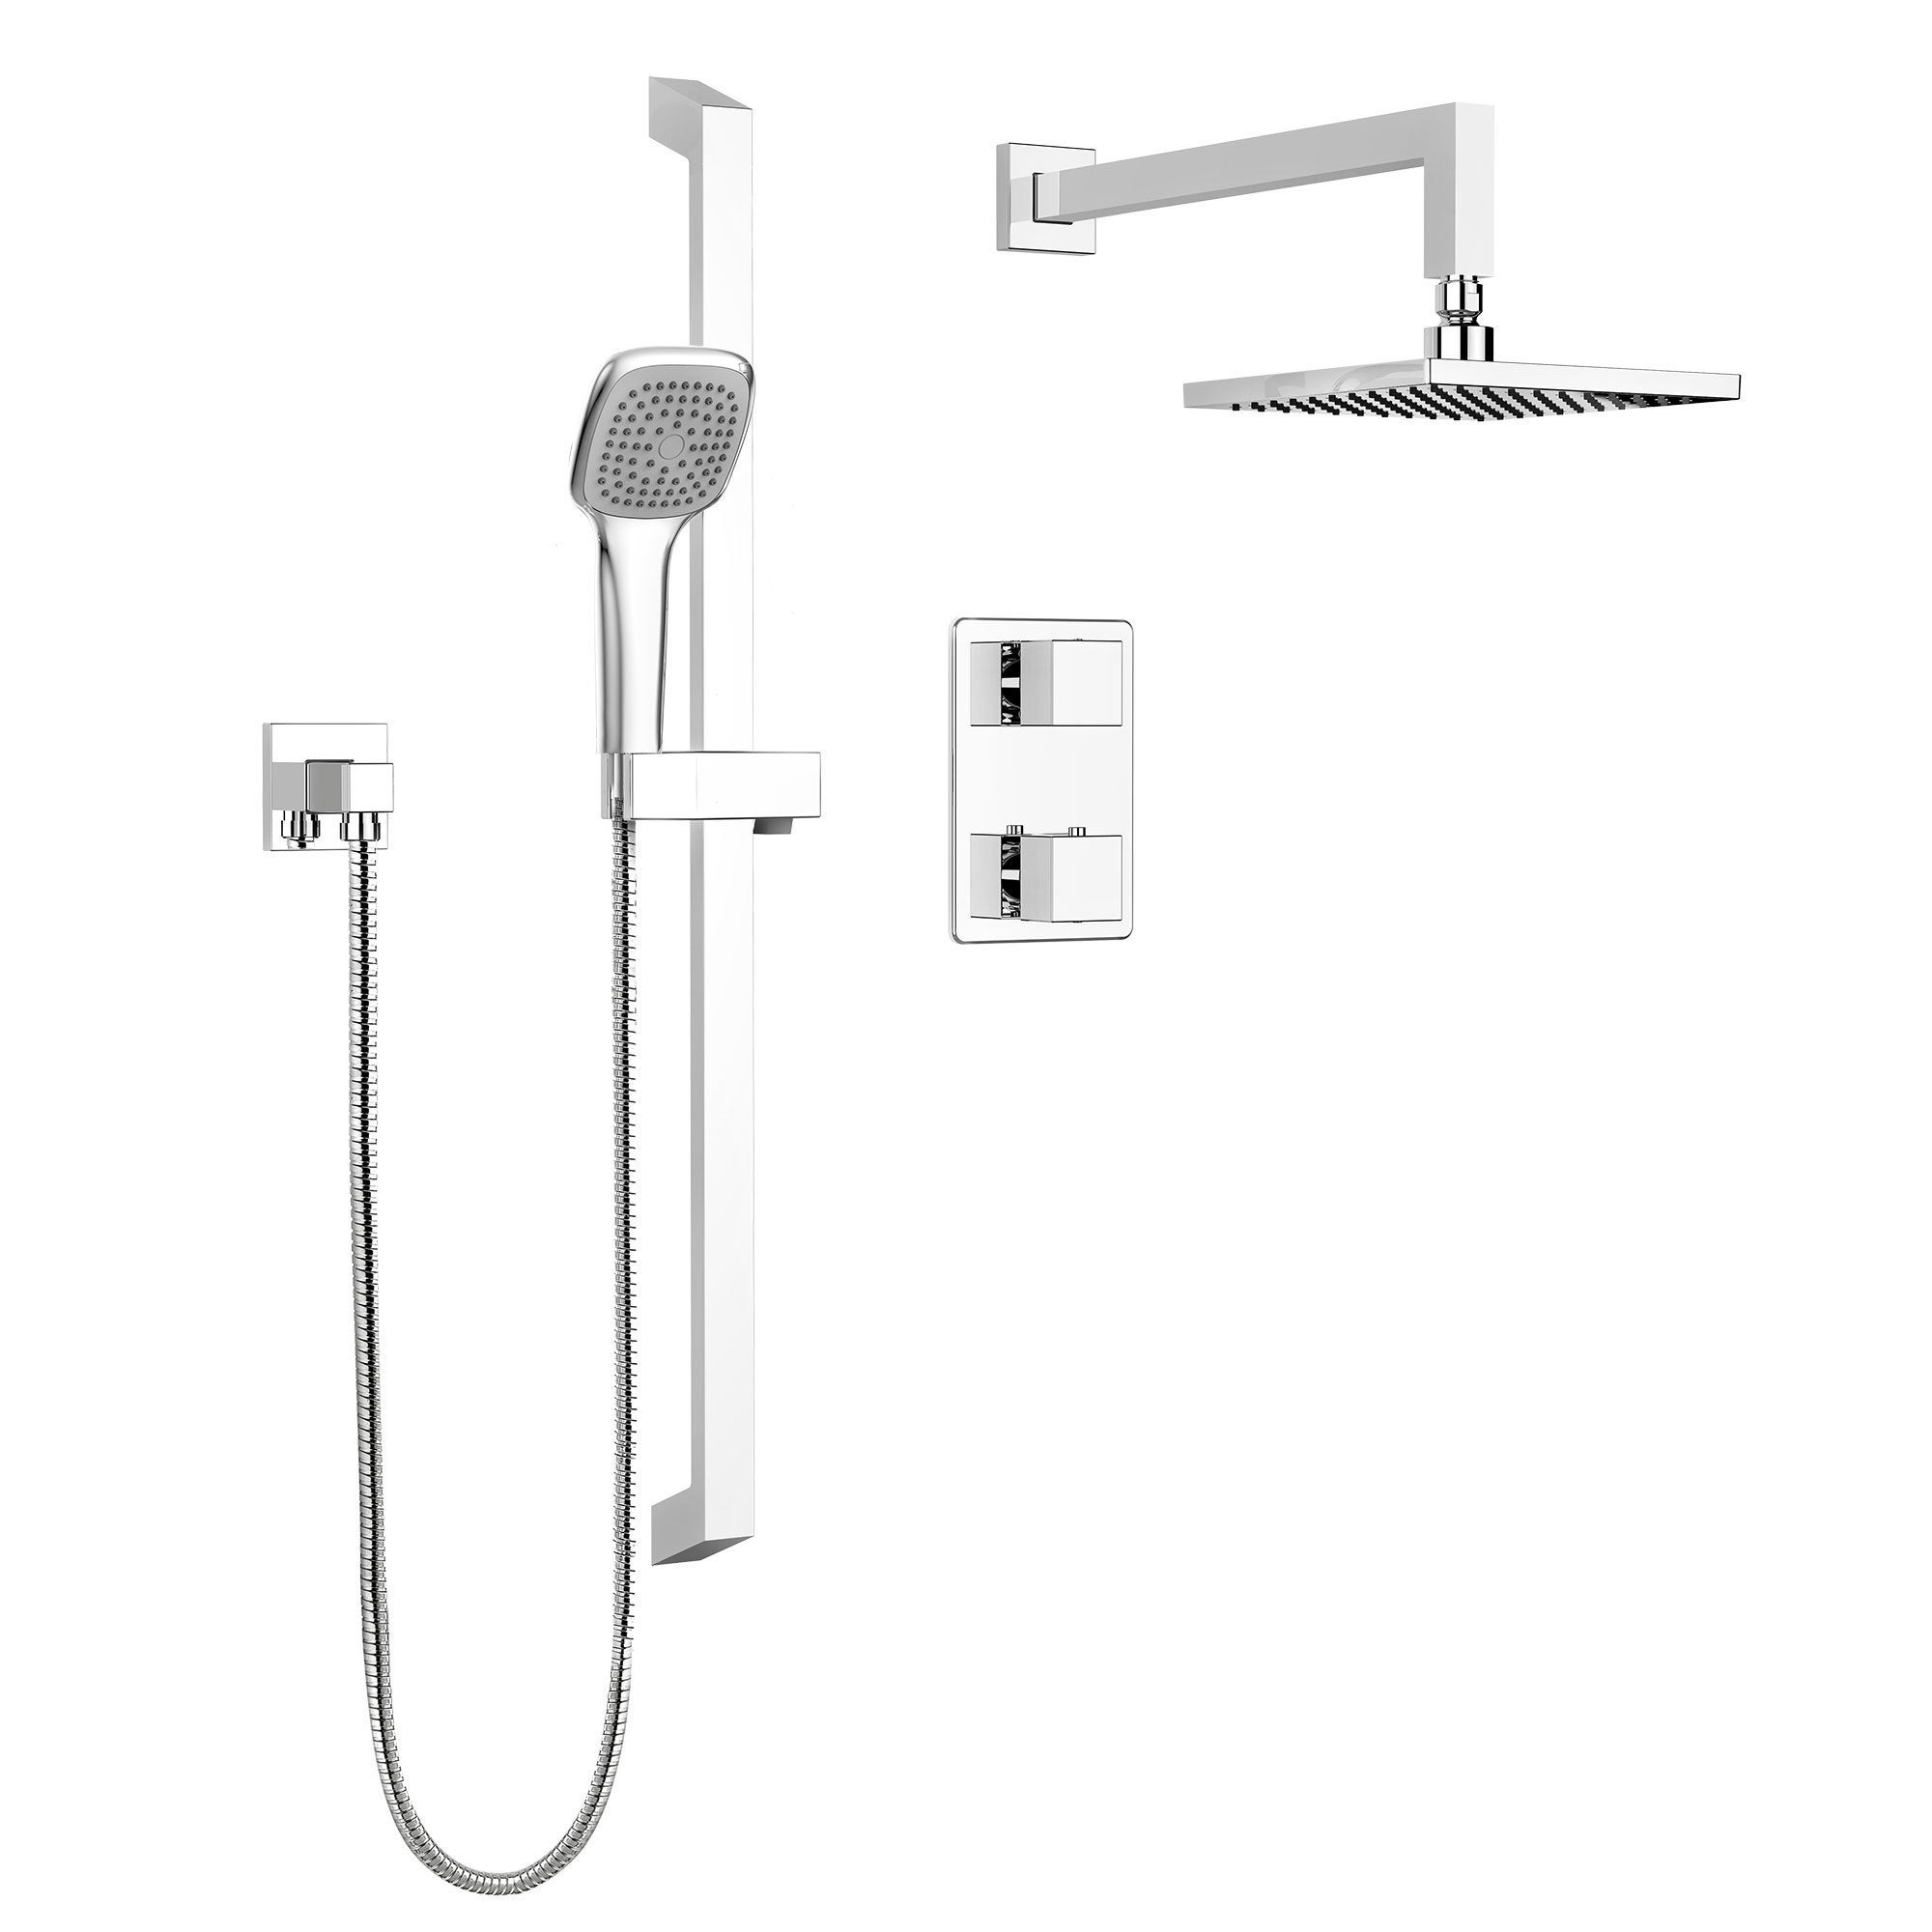 Stylish Square Shower Faucet – Complete set with Thermostatic ...